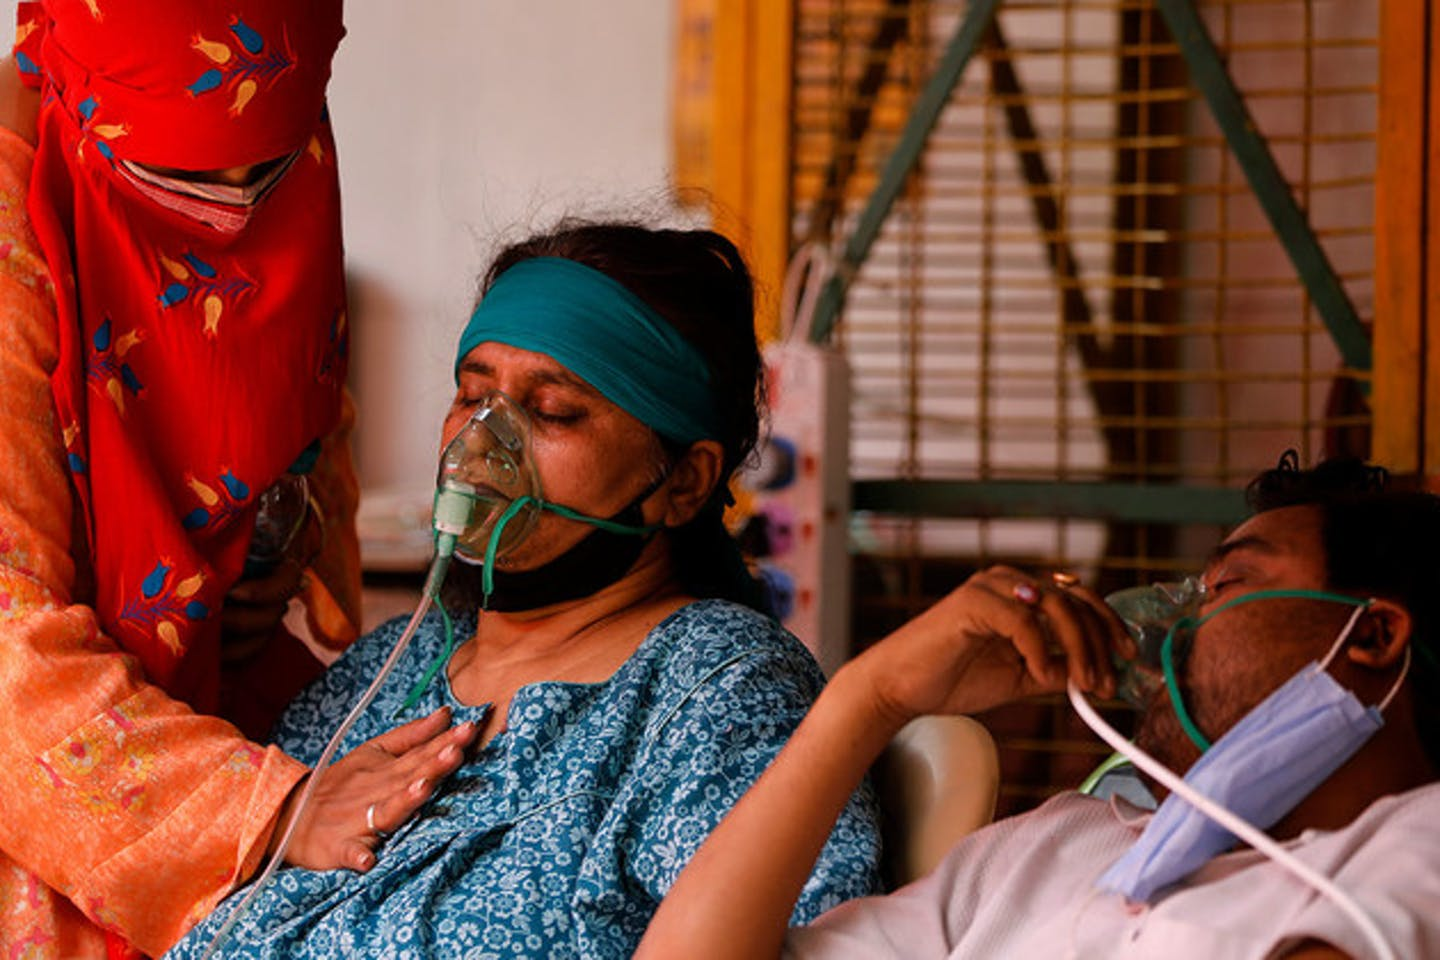 What can the UN do to support India through its deadly Covid-19 surge?